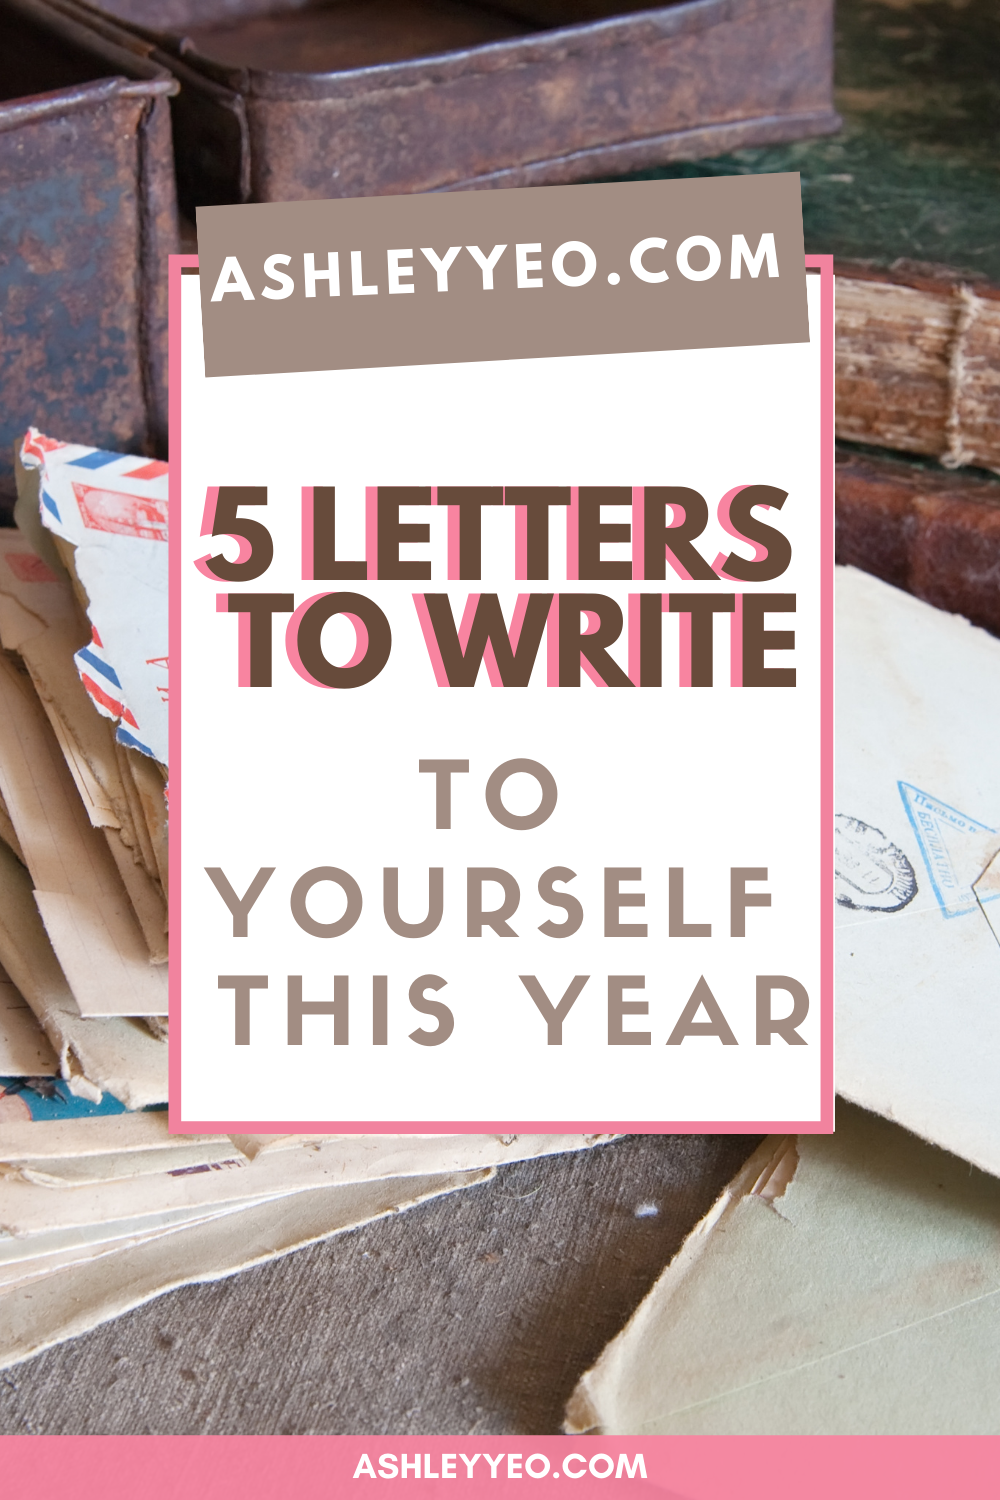 Dear Diary: 5 Letters to Write to Yourself This Year